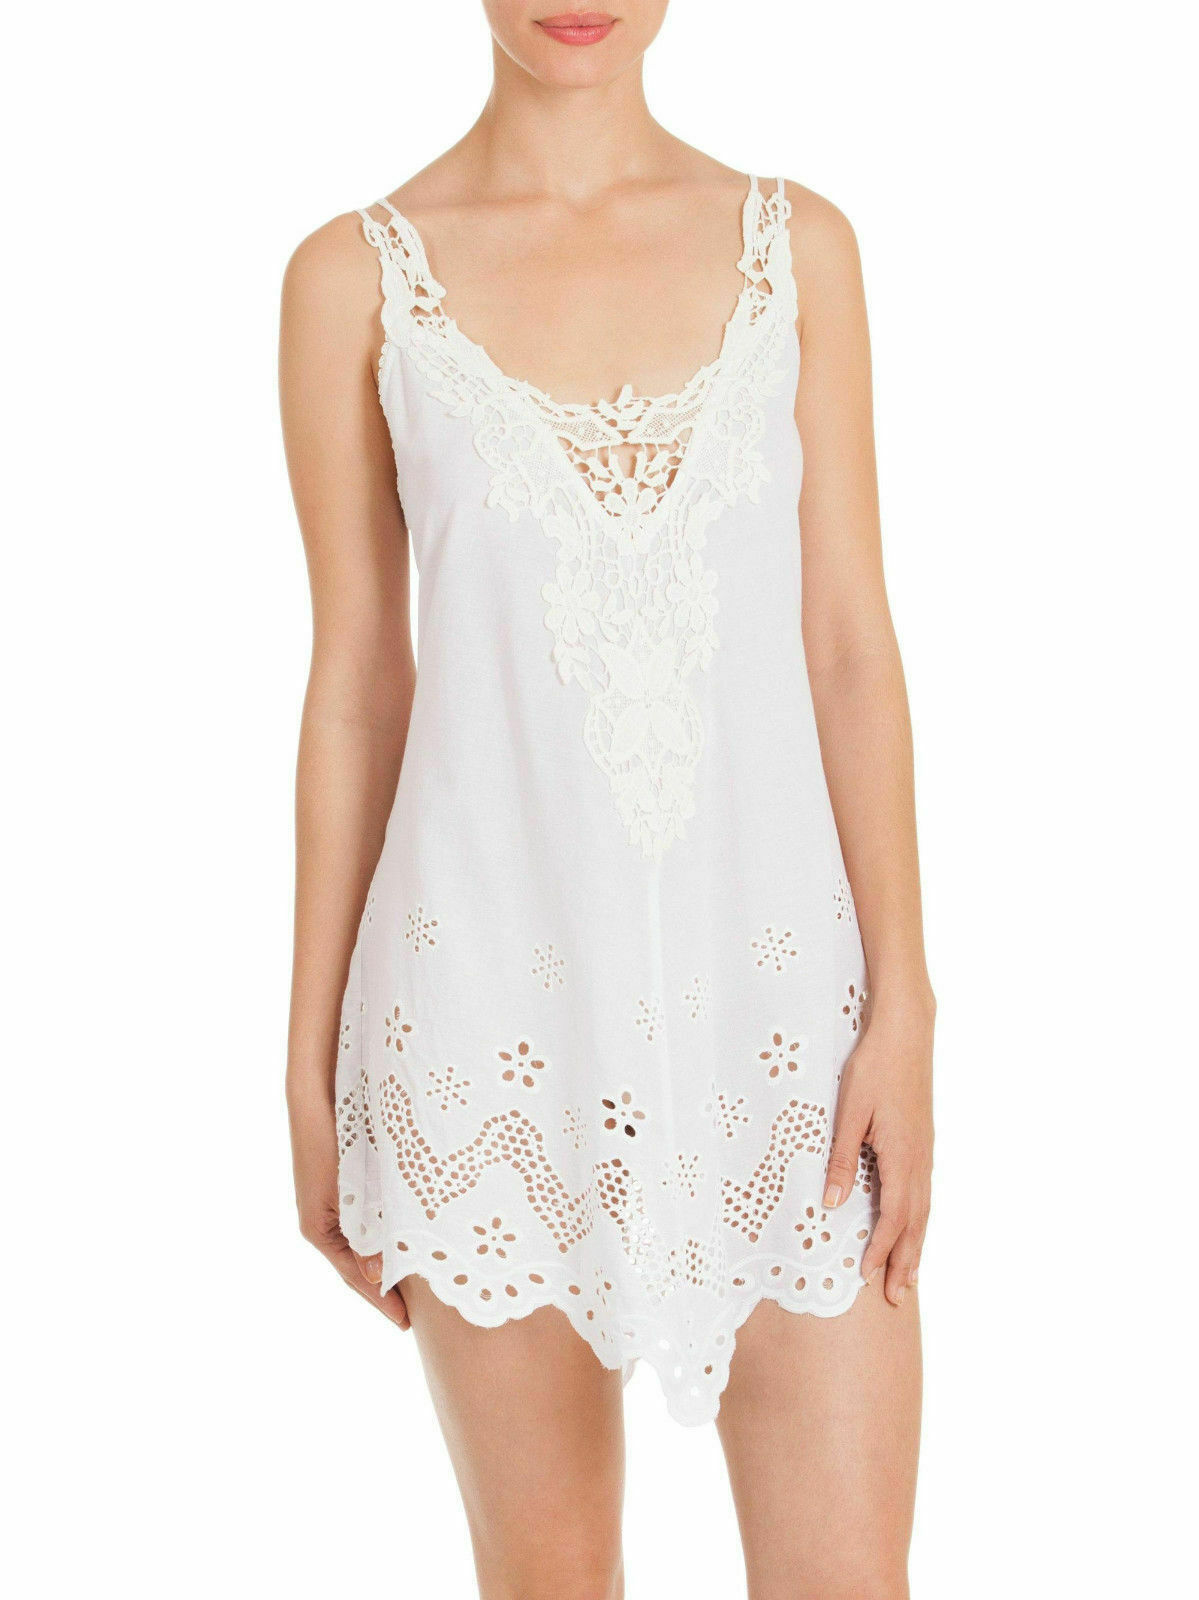 In Bloom byJonquil Idlewild Chemise Short Gown White(Ivory) Cotton Small S NWT